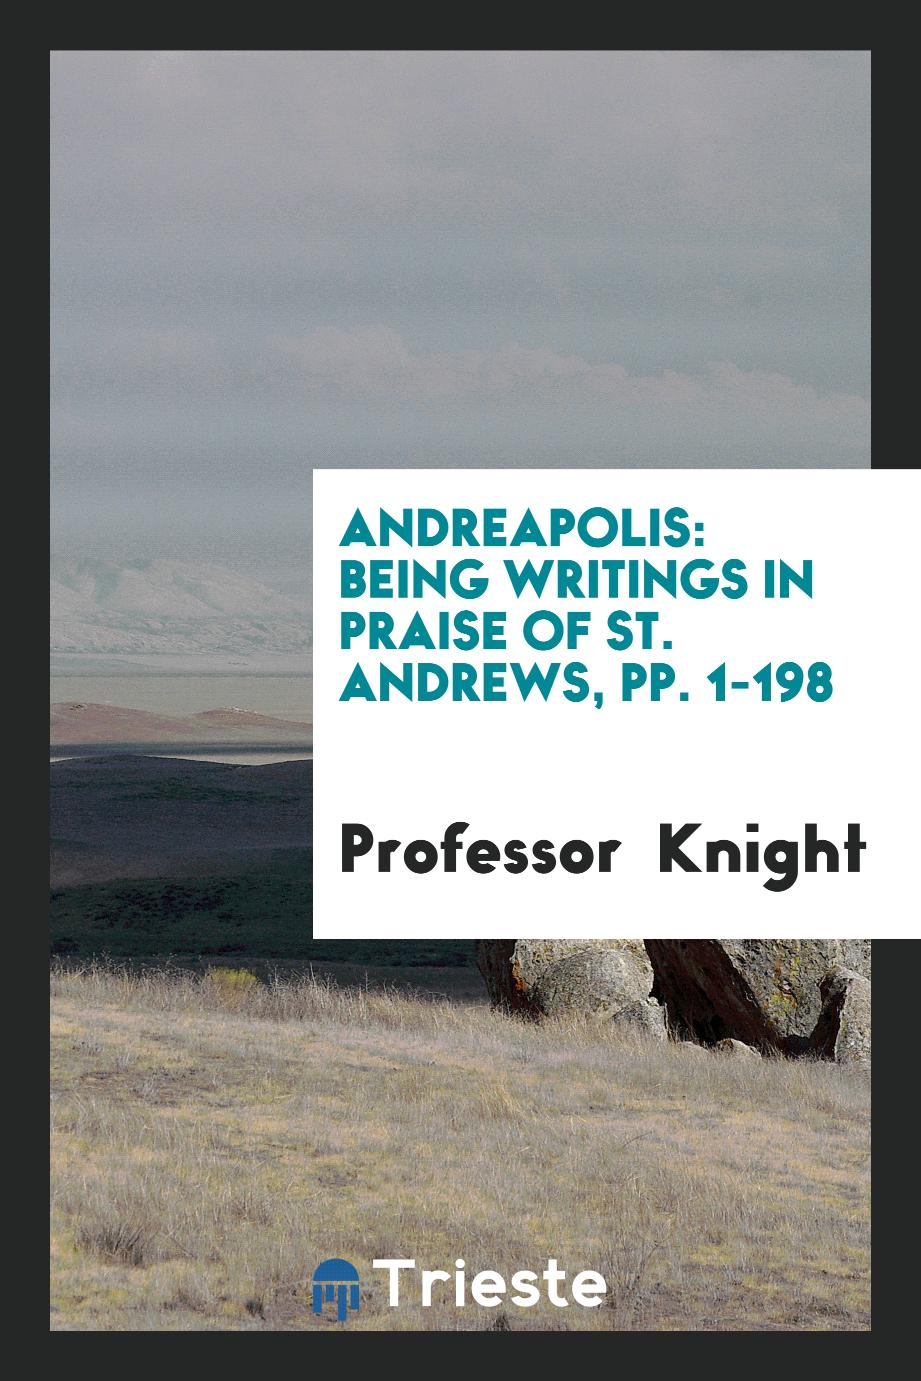 Andreapolis: Being Writings in Praise of St. Andrews, pp. 1-198